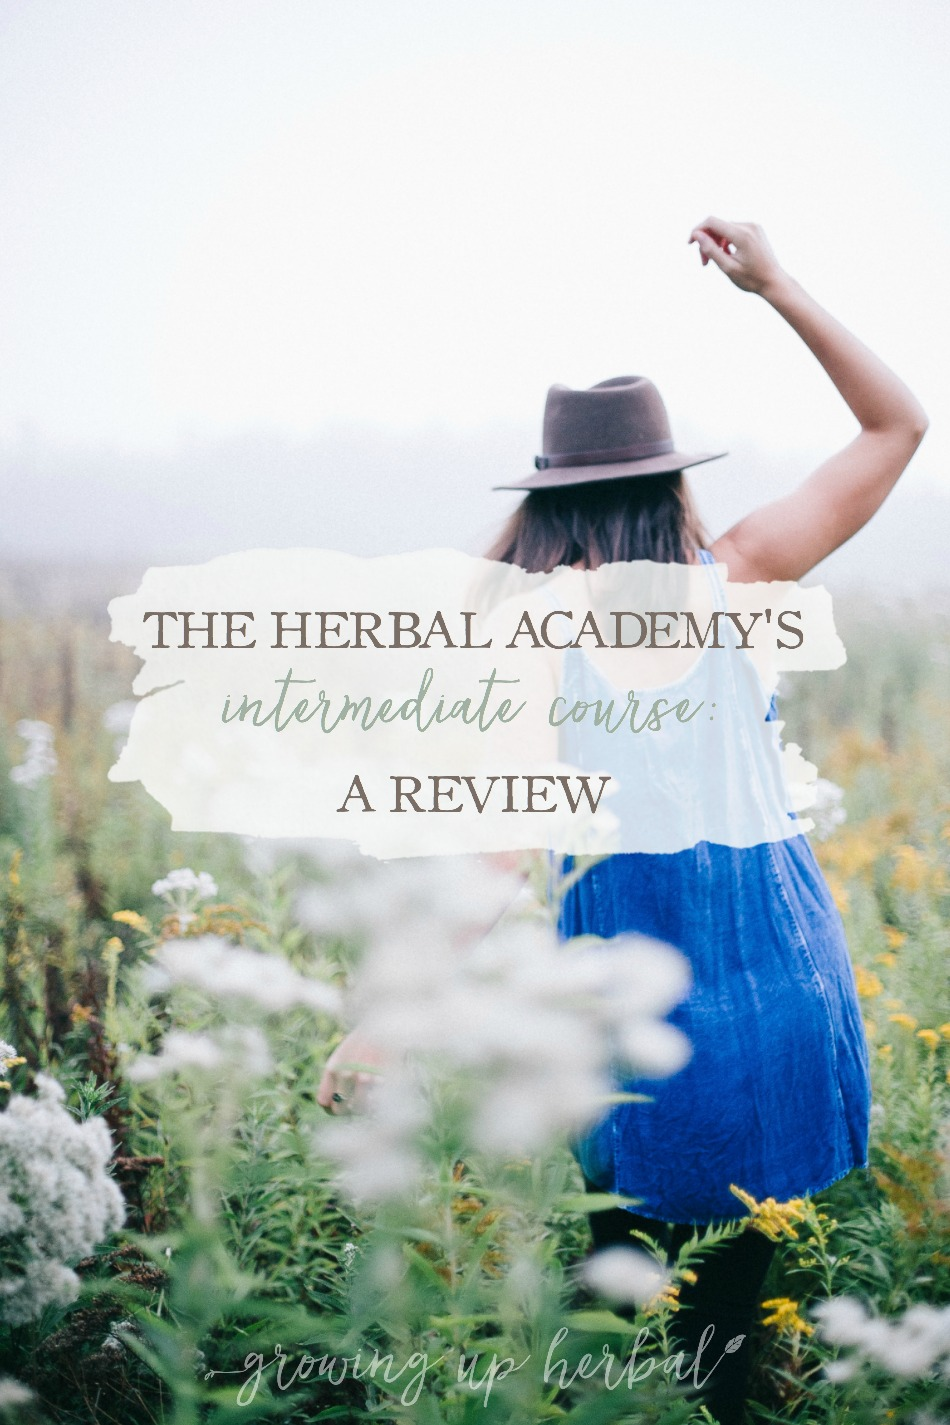 The Herbal Academy's Intermediate Herbal Course: A Review | Growing Up Herbal | Ever thought about going to herbal school at the Herbal Academy? If you're curious and you'd like an inside look, check out my review of their Intermediate Herbal Course right here!